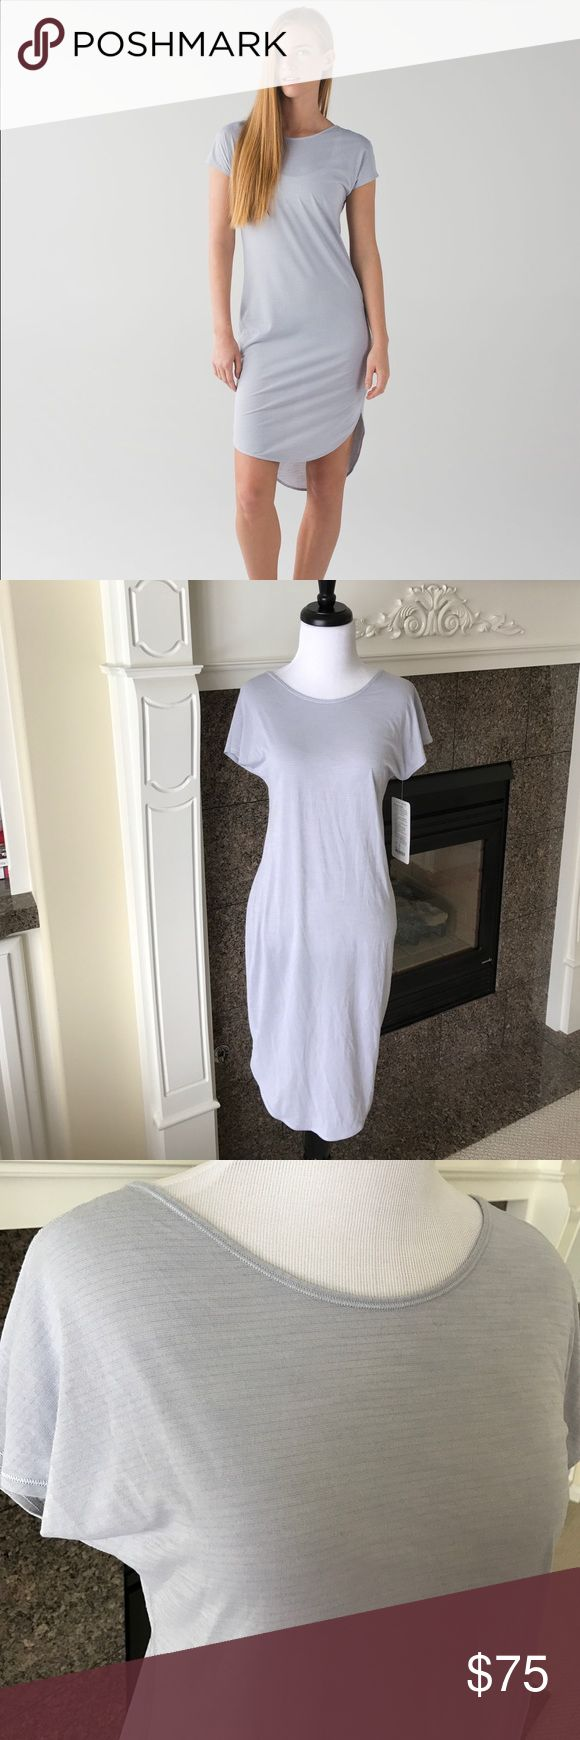 NWT Lululemon Retreat Dress HSFX Heathered Silver Cute and comfy Lululemon dress! NWT, Retreat dress in Heathered Silver Fox shade. No trades please! lululemon athletica Dresses High Low